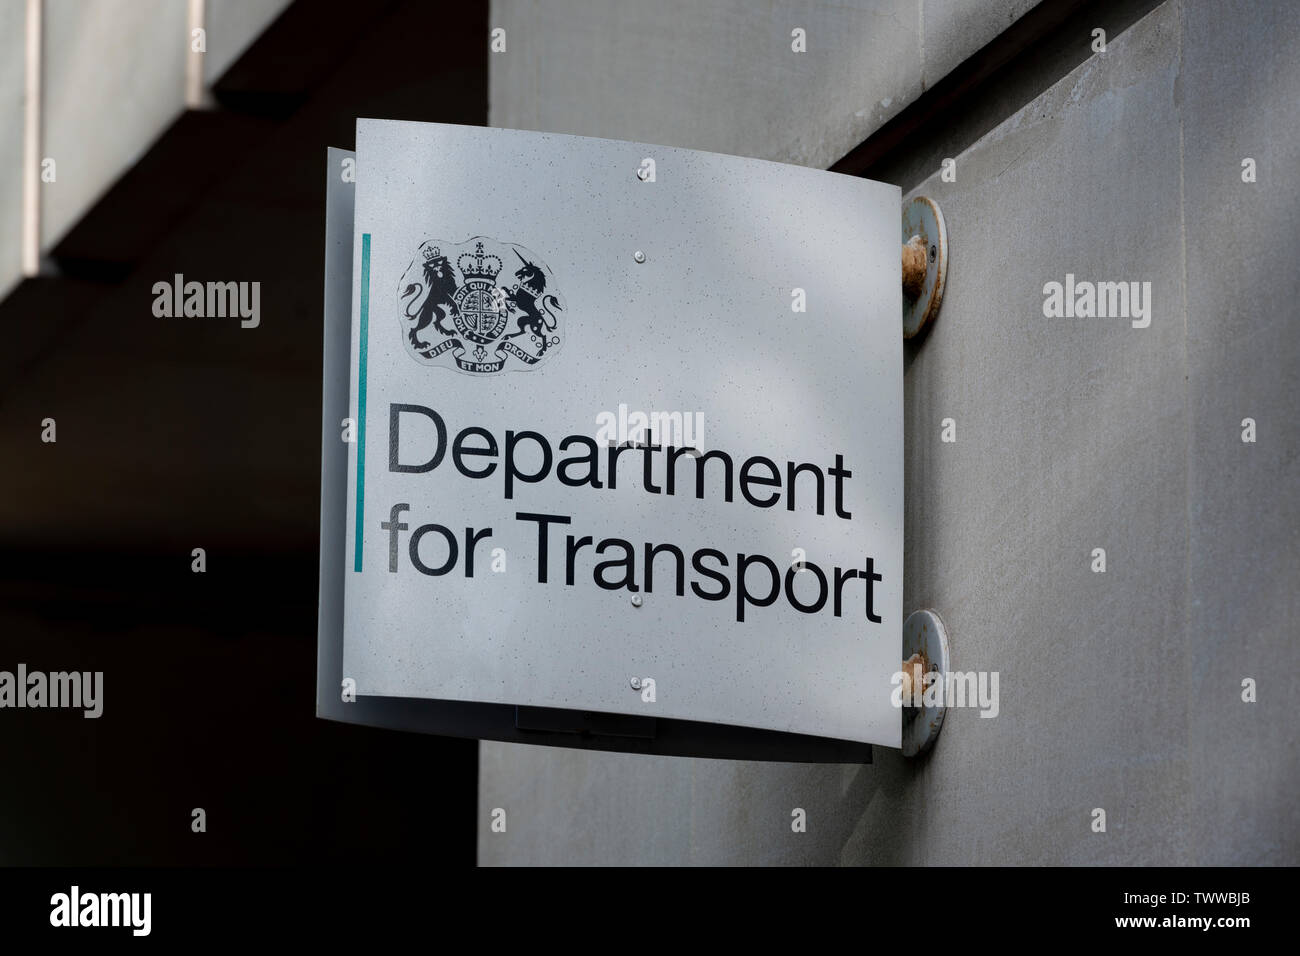 Signage for the Department for the Department for Transport building located on Horseferry Road in London, UK. Stock Photo